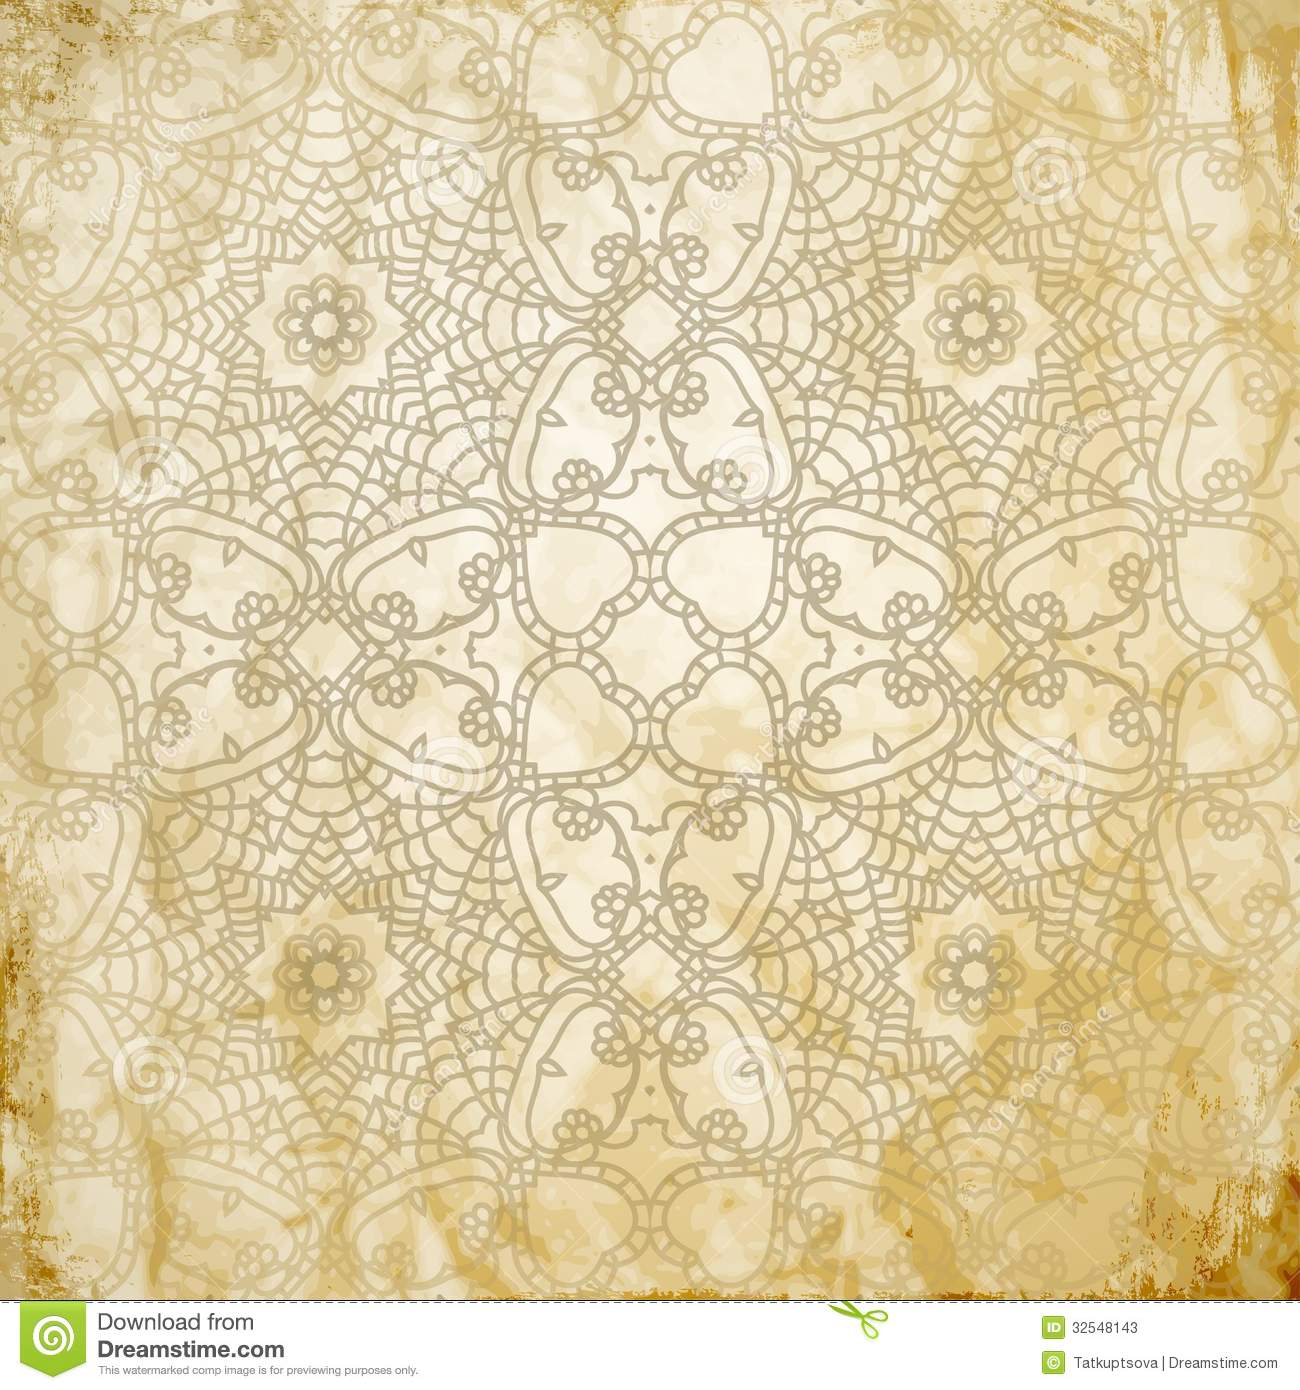 Lace Pattern Background With Indian Ornament Stock Photos - Image: 32548143